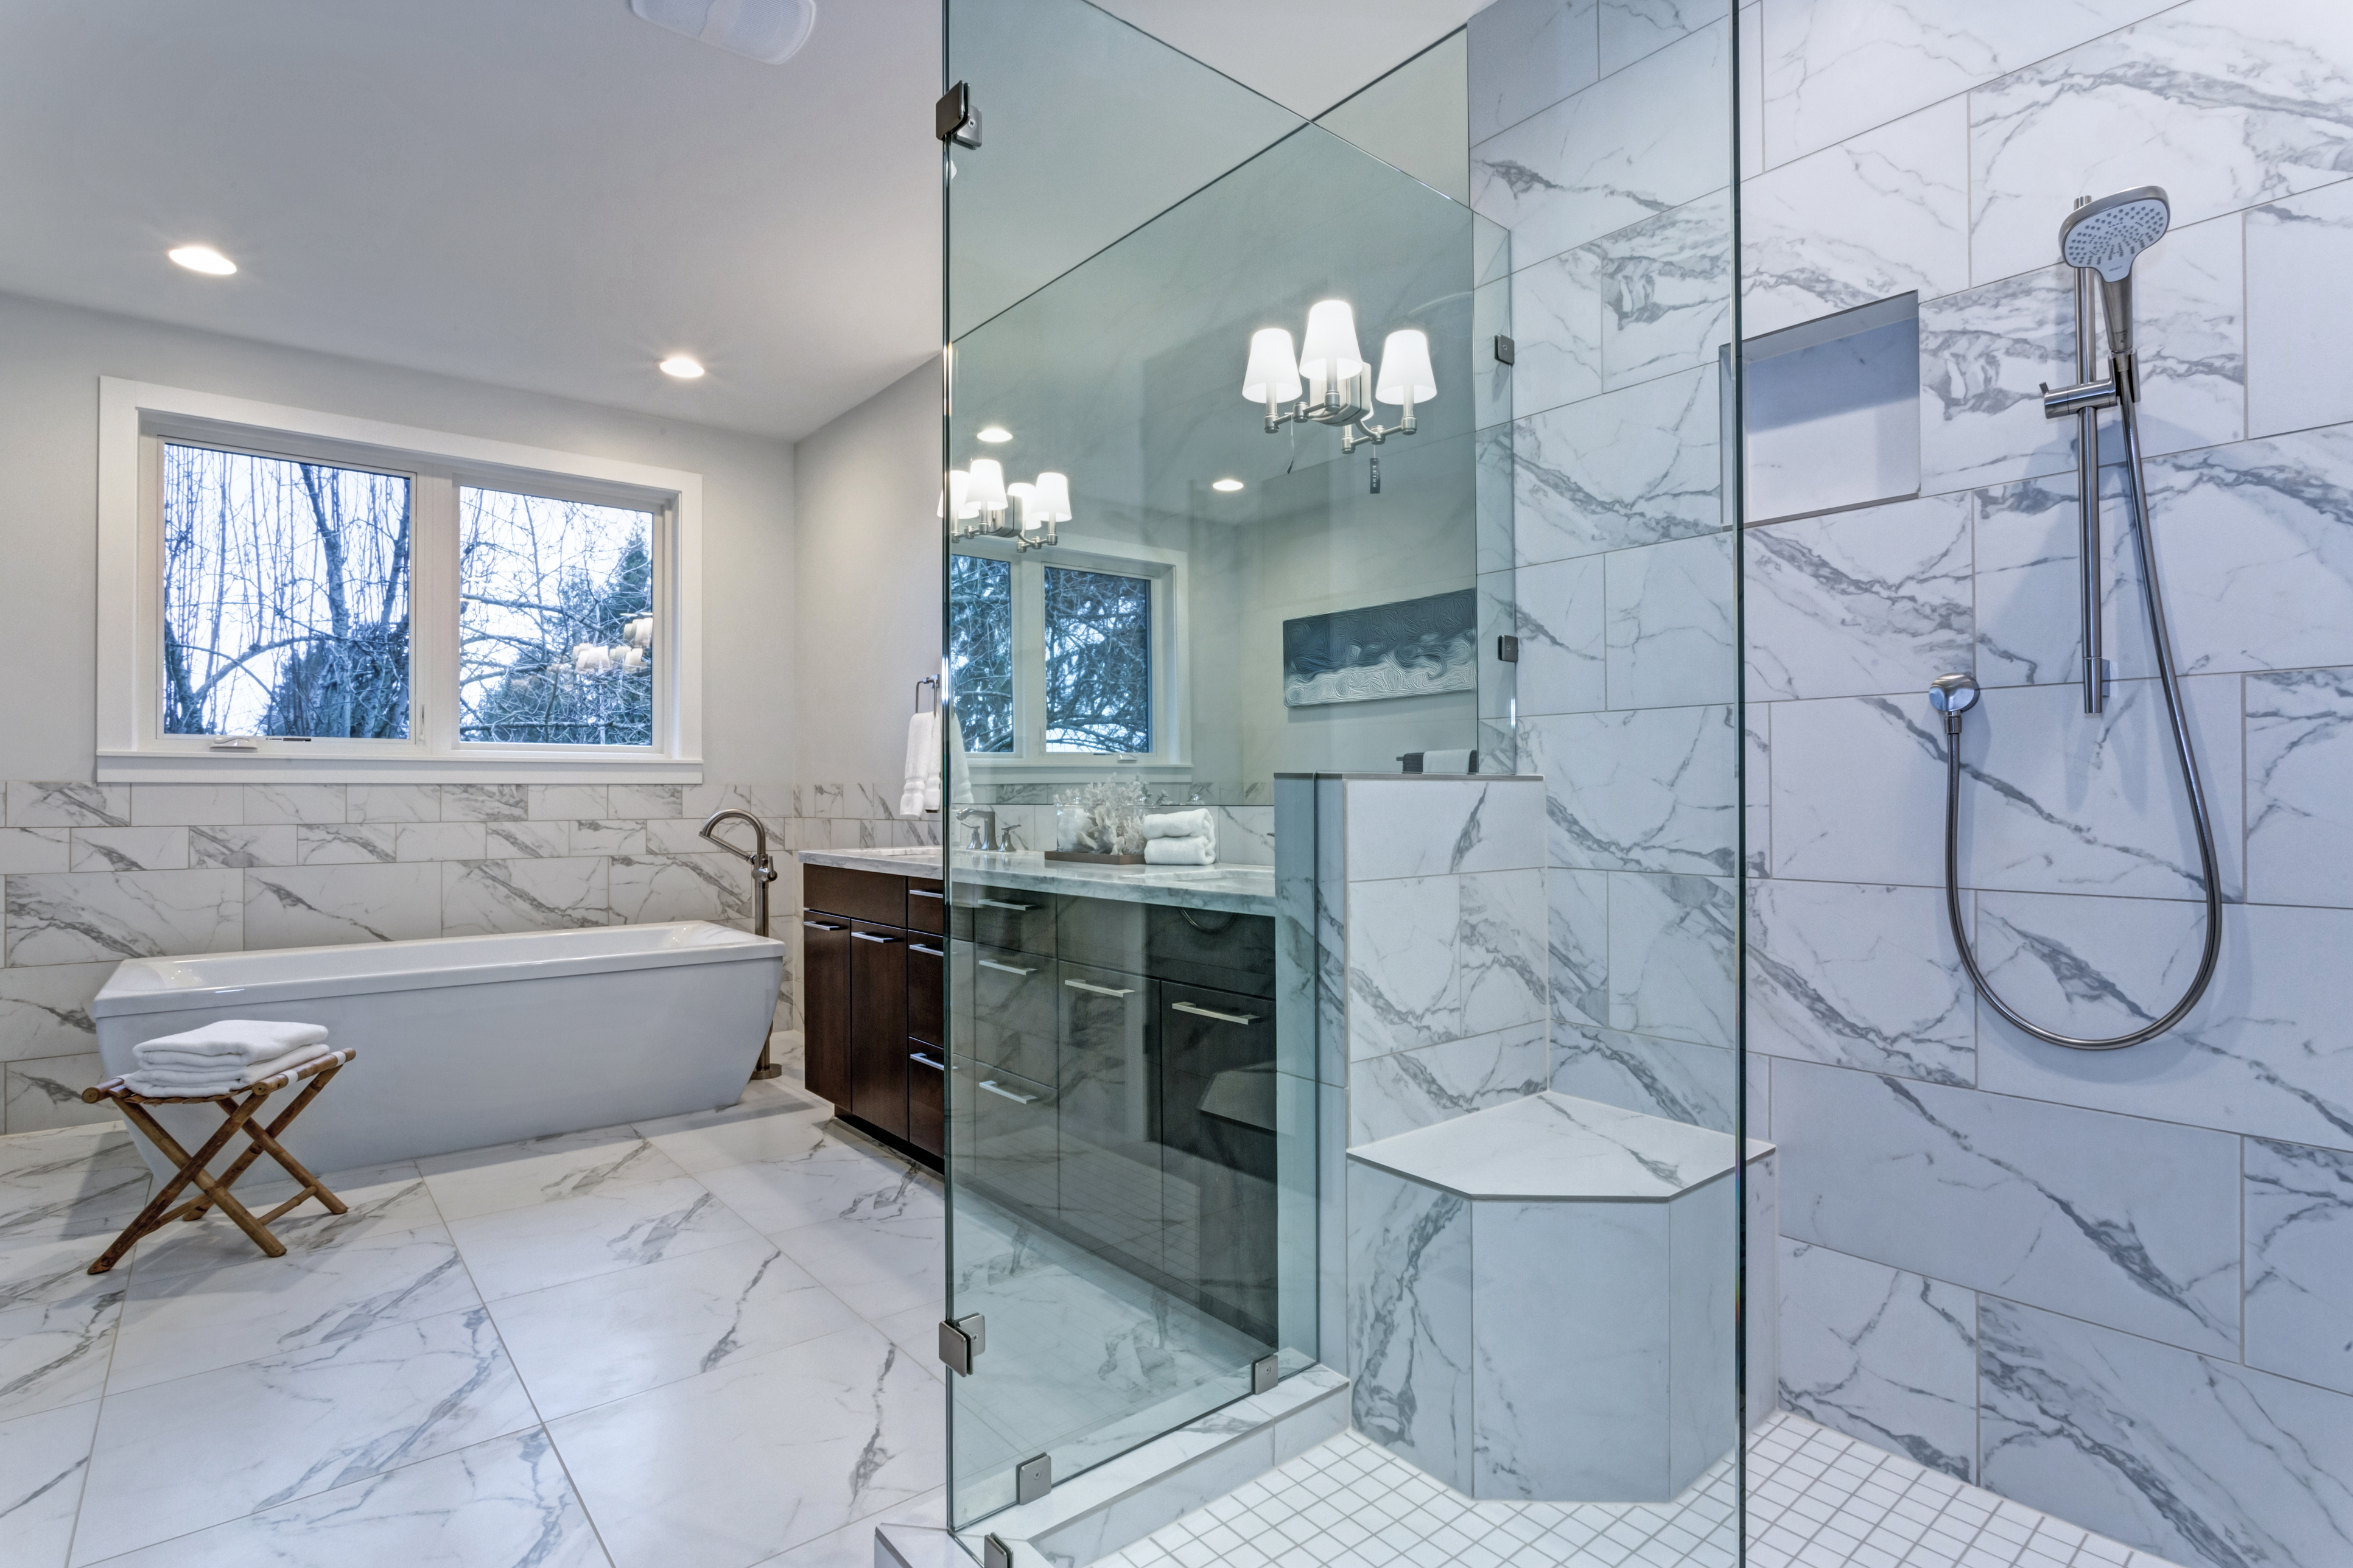 Inspire Your Interior Design with These Large Format Tile Ideas